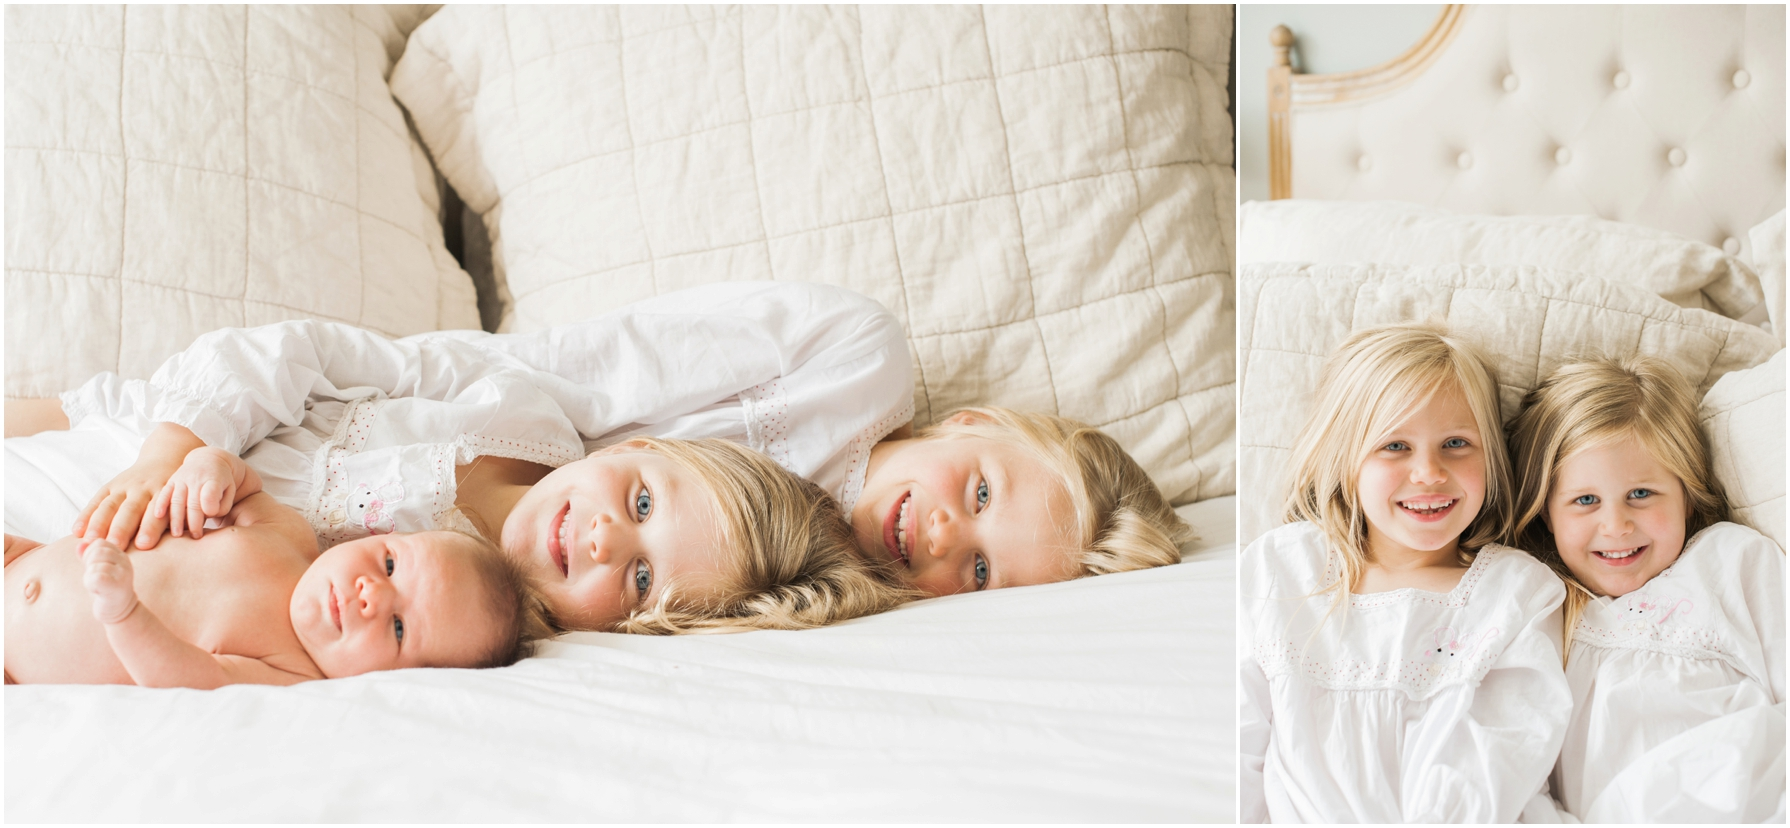 two little girls and their baby sister lying on the bed together